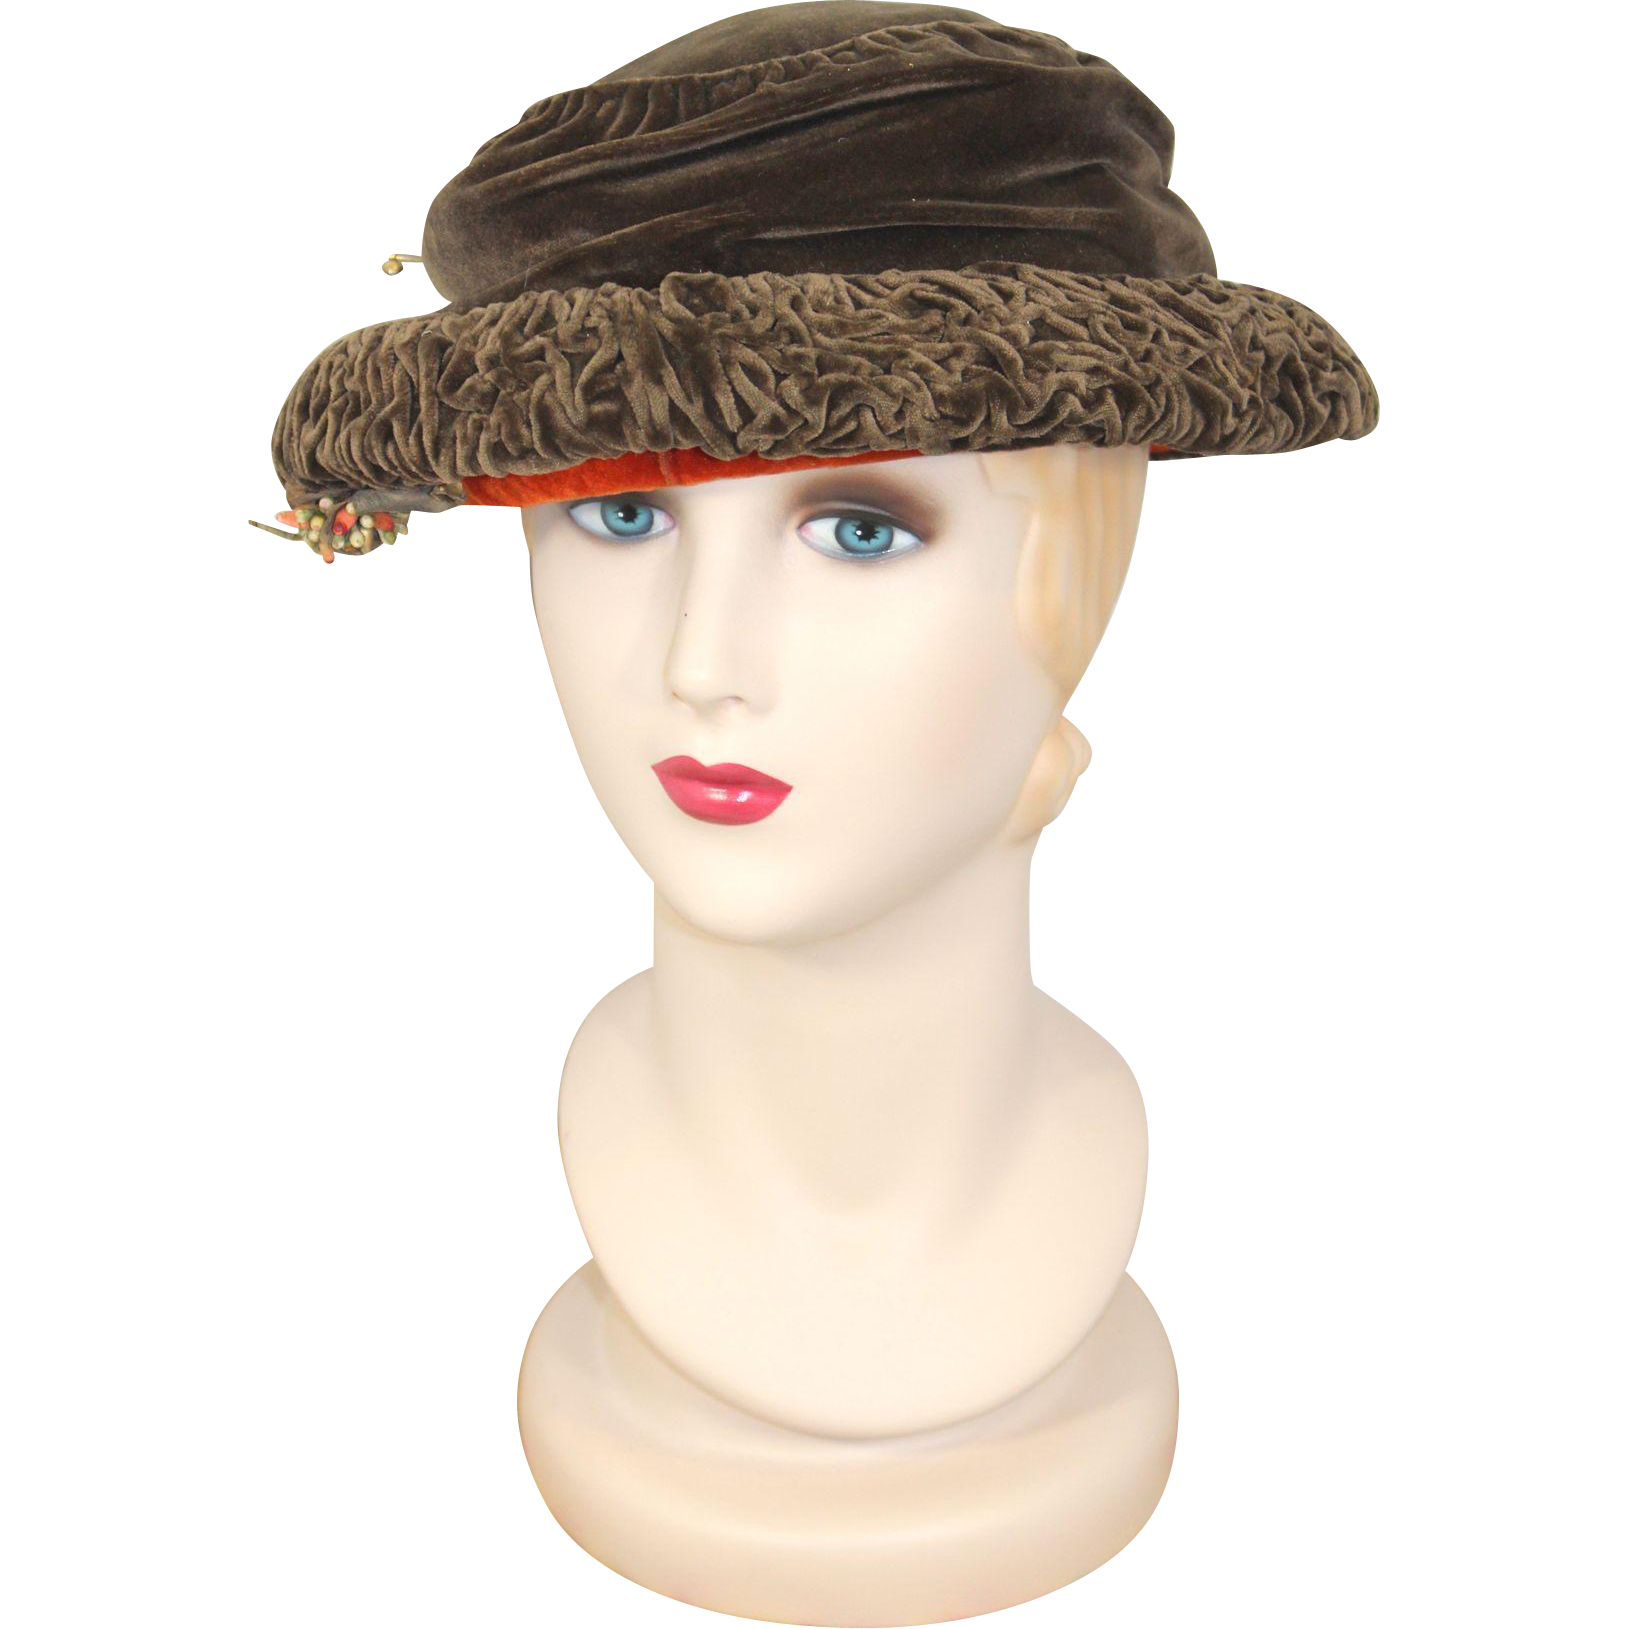 Vintage 1920s Spice Brown Velvet Cloche Hat Gainsborough Millinery